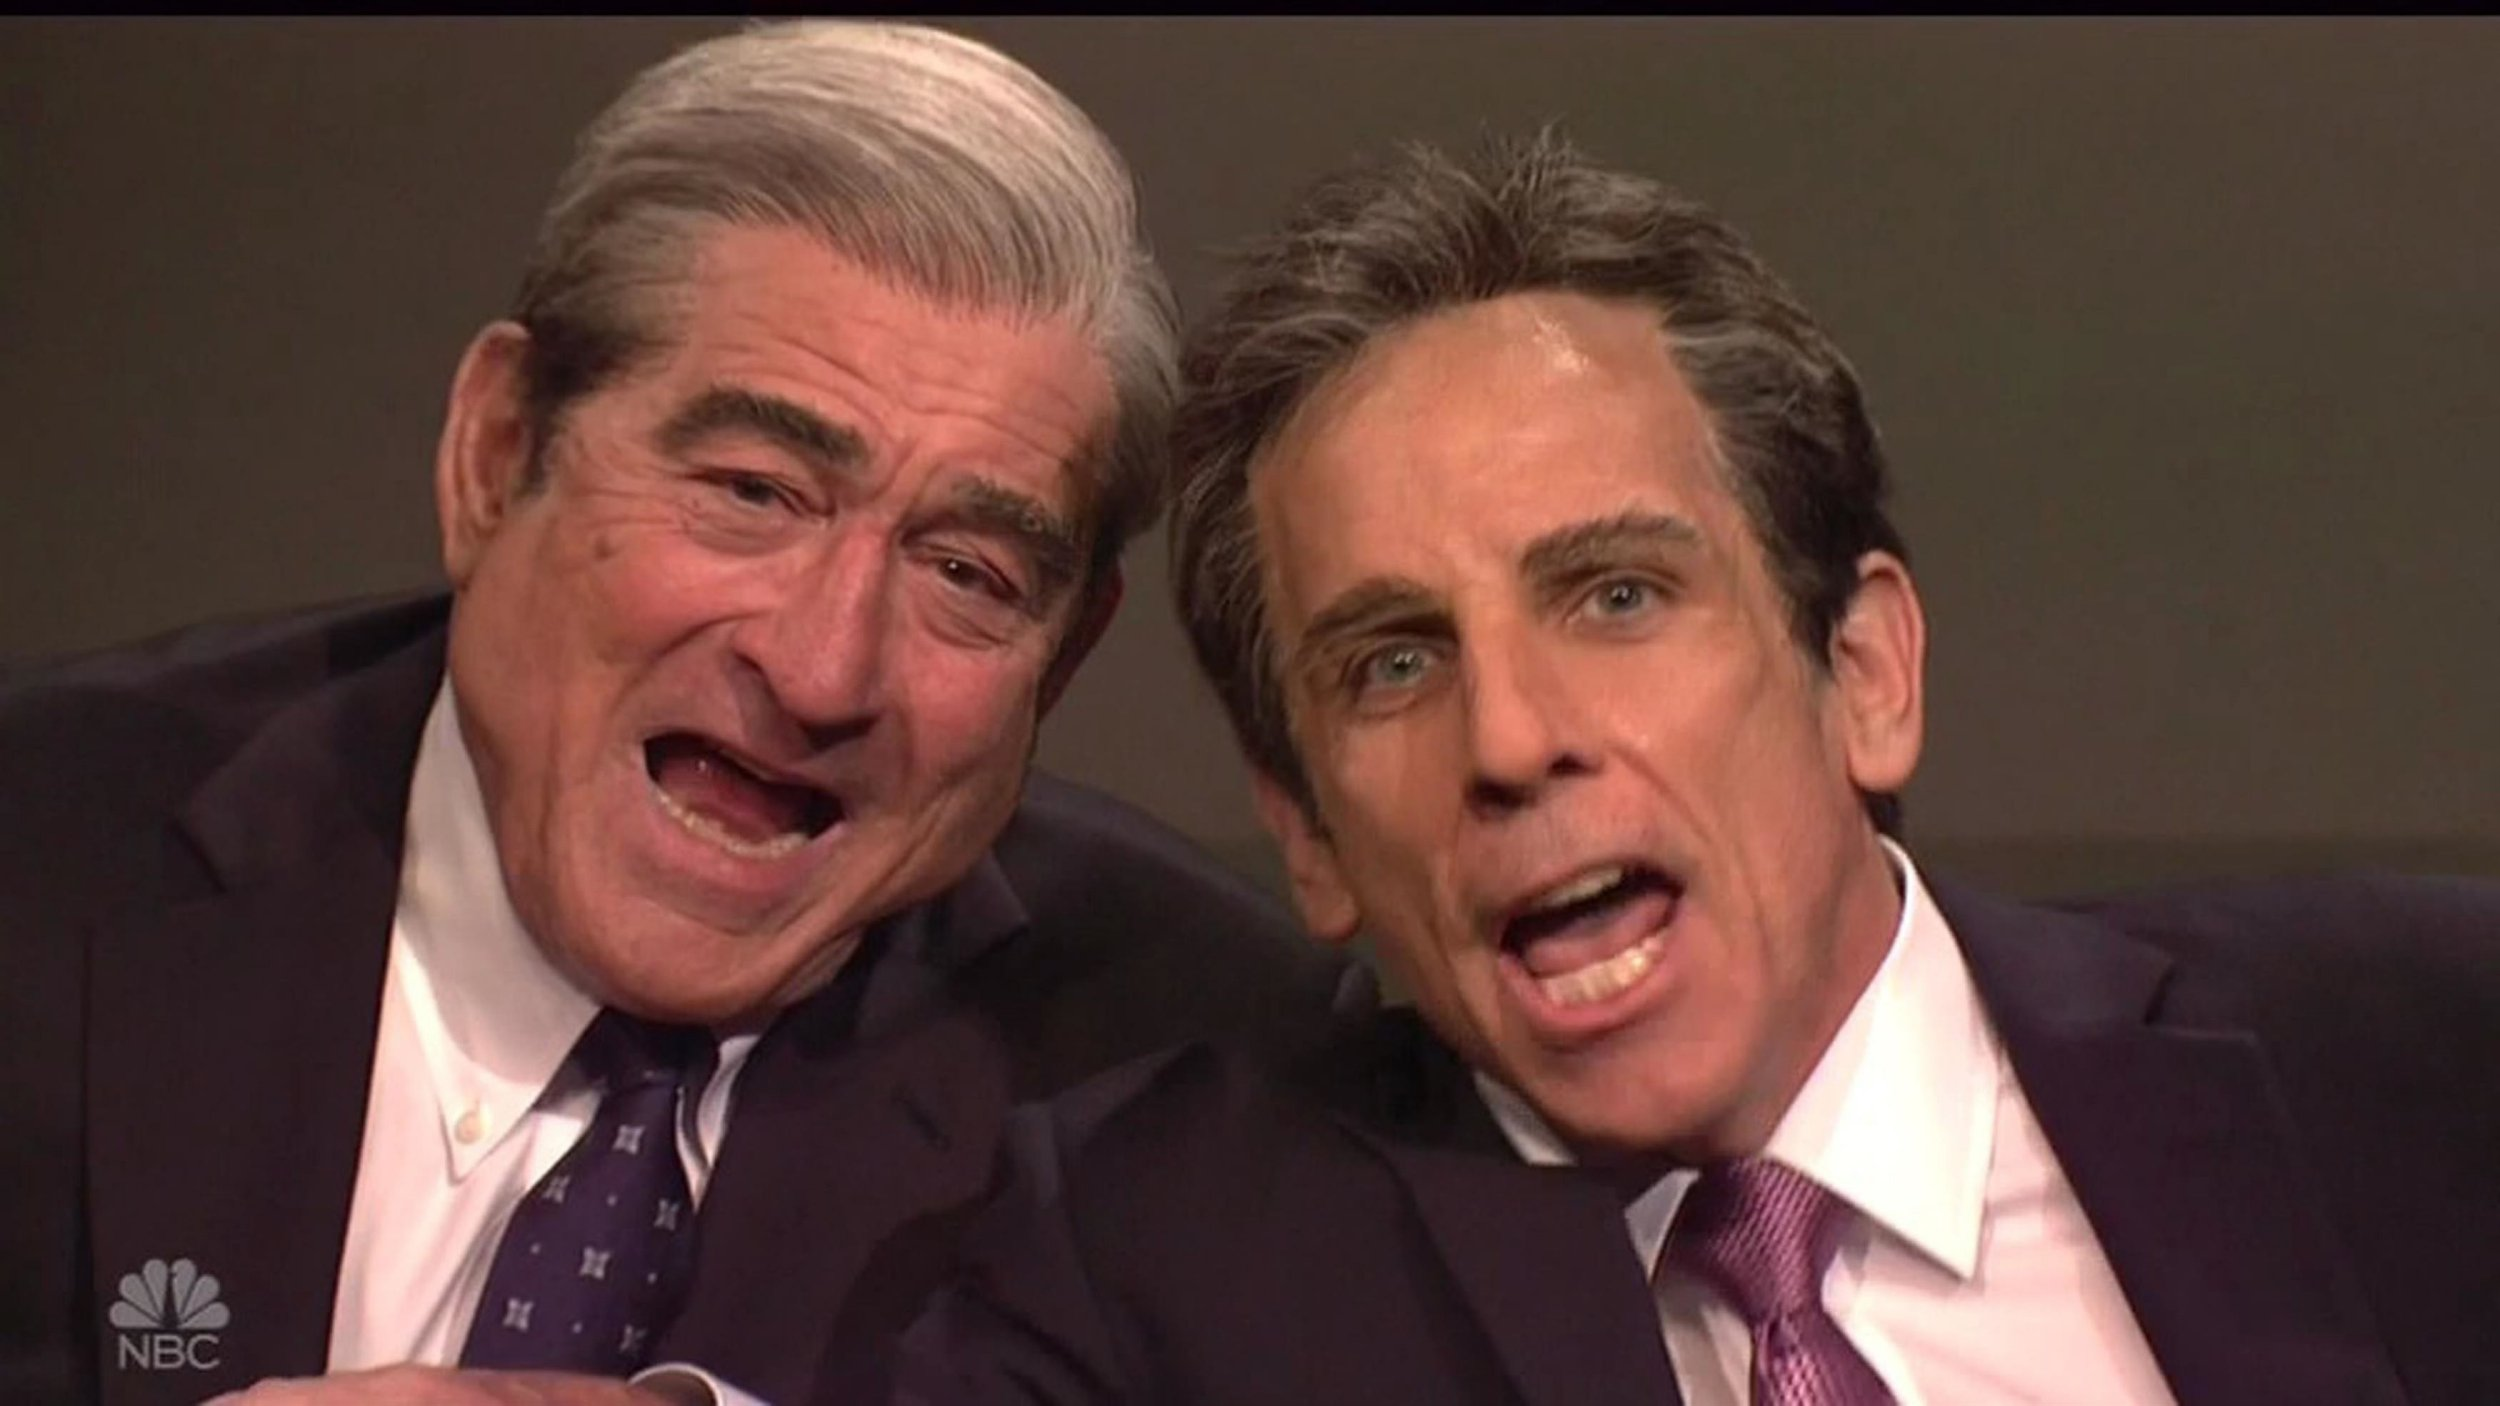 Robert De Niro and Ben Stiller mock White House troubles with Meet The Parents' lie detector scene